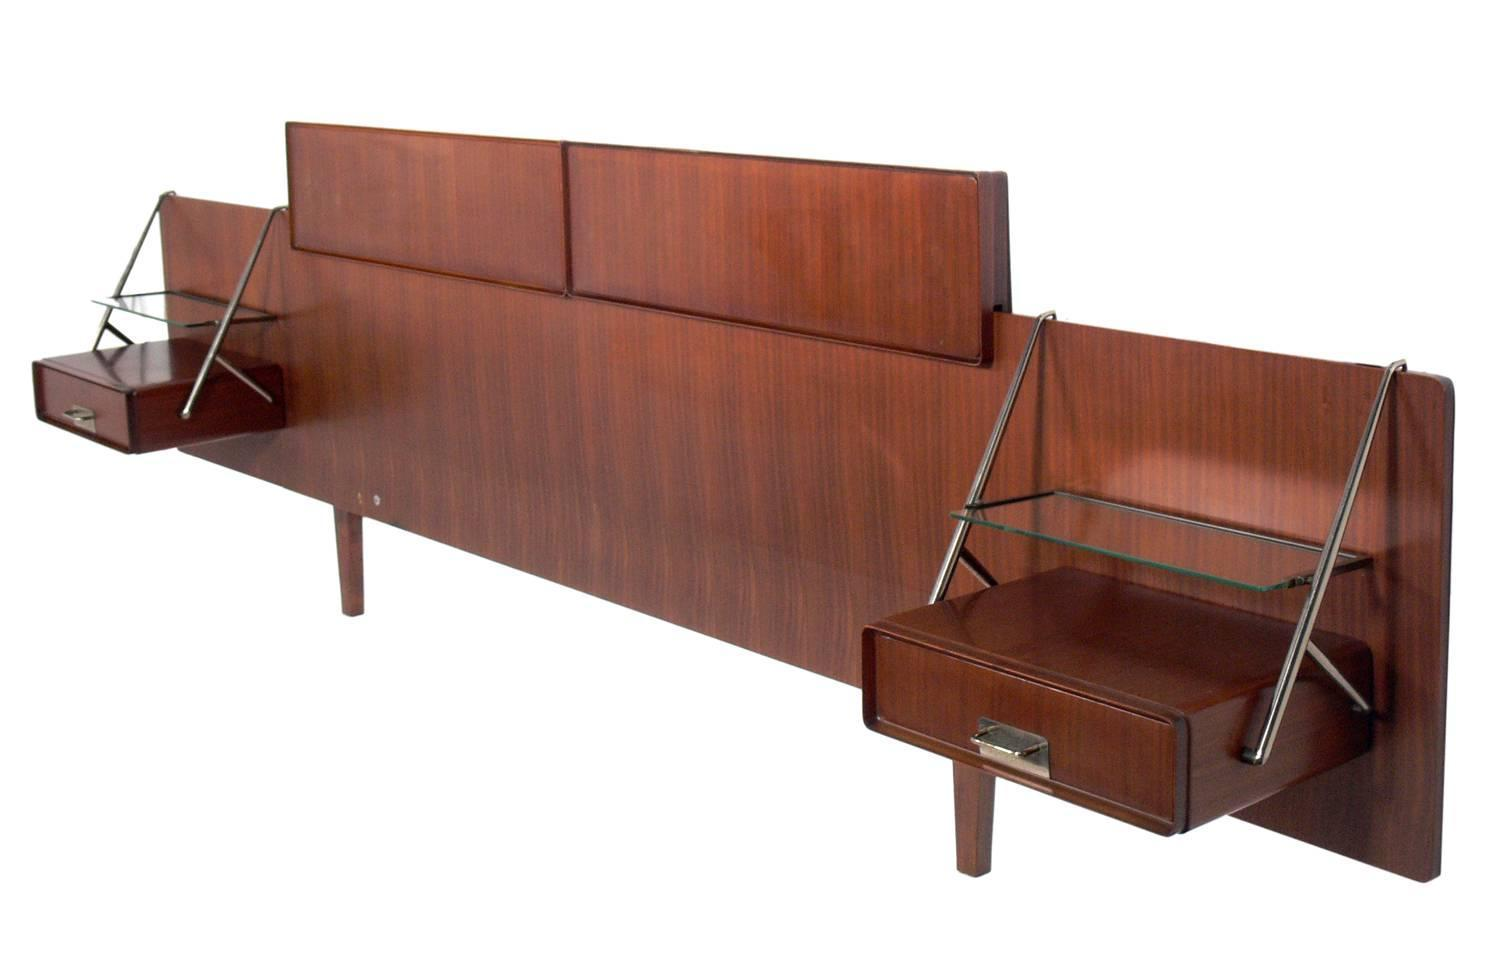 Silvio Cavatorta Rosewood Headboard with Floating Nightstands For Sale at 1stdibs